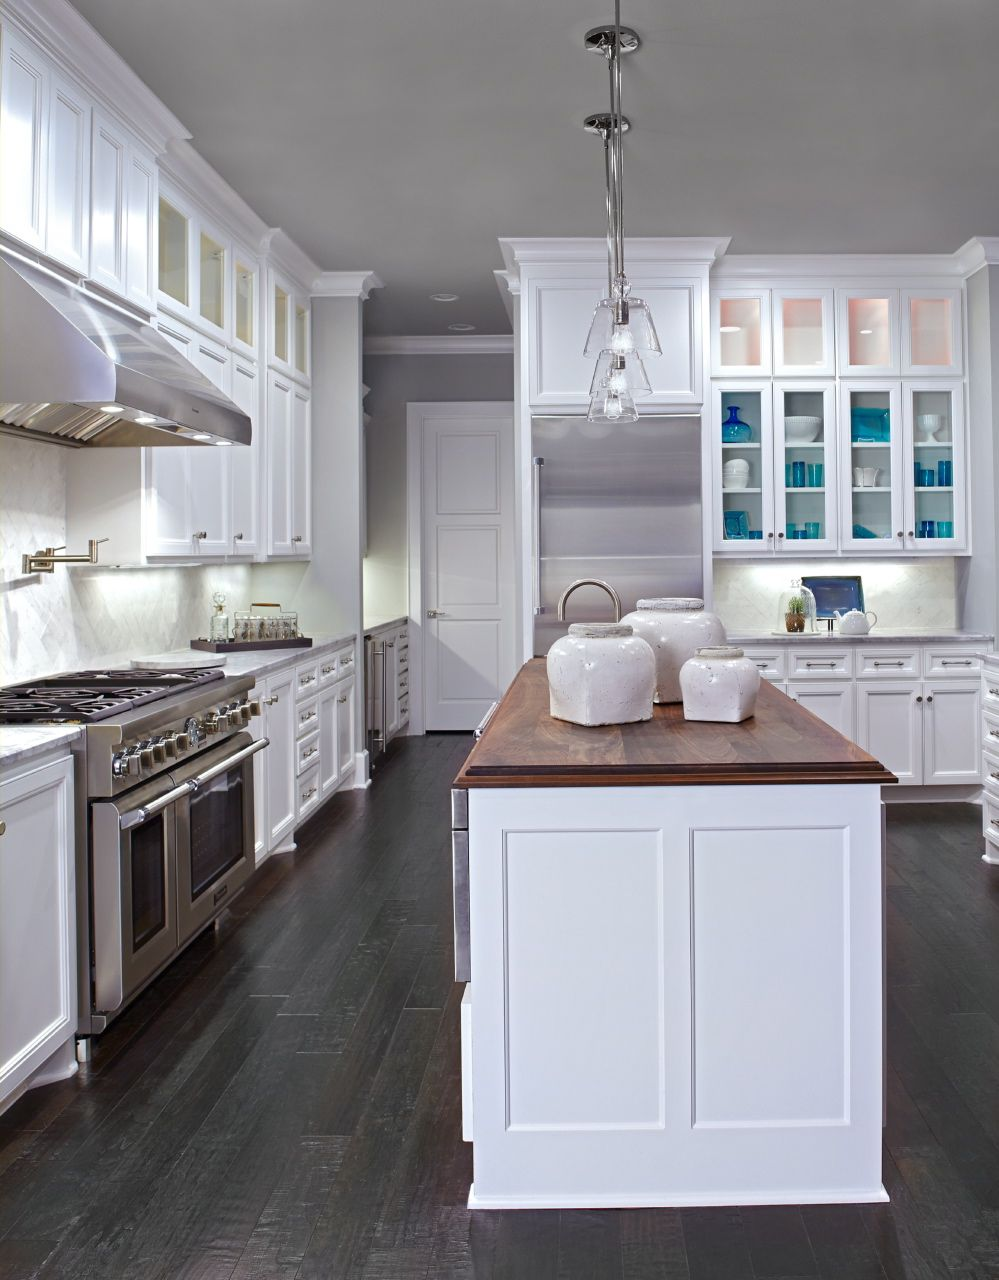 White Kitchens Dark Floors White Cabinets Dark Wood Floors Wood Countertop In Walnut On